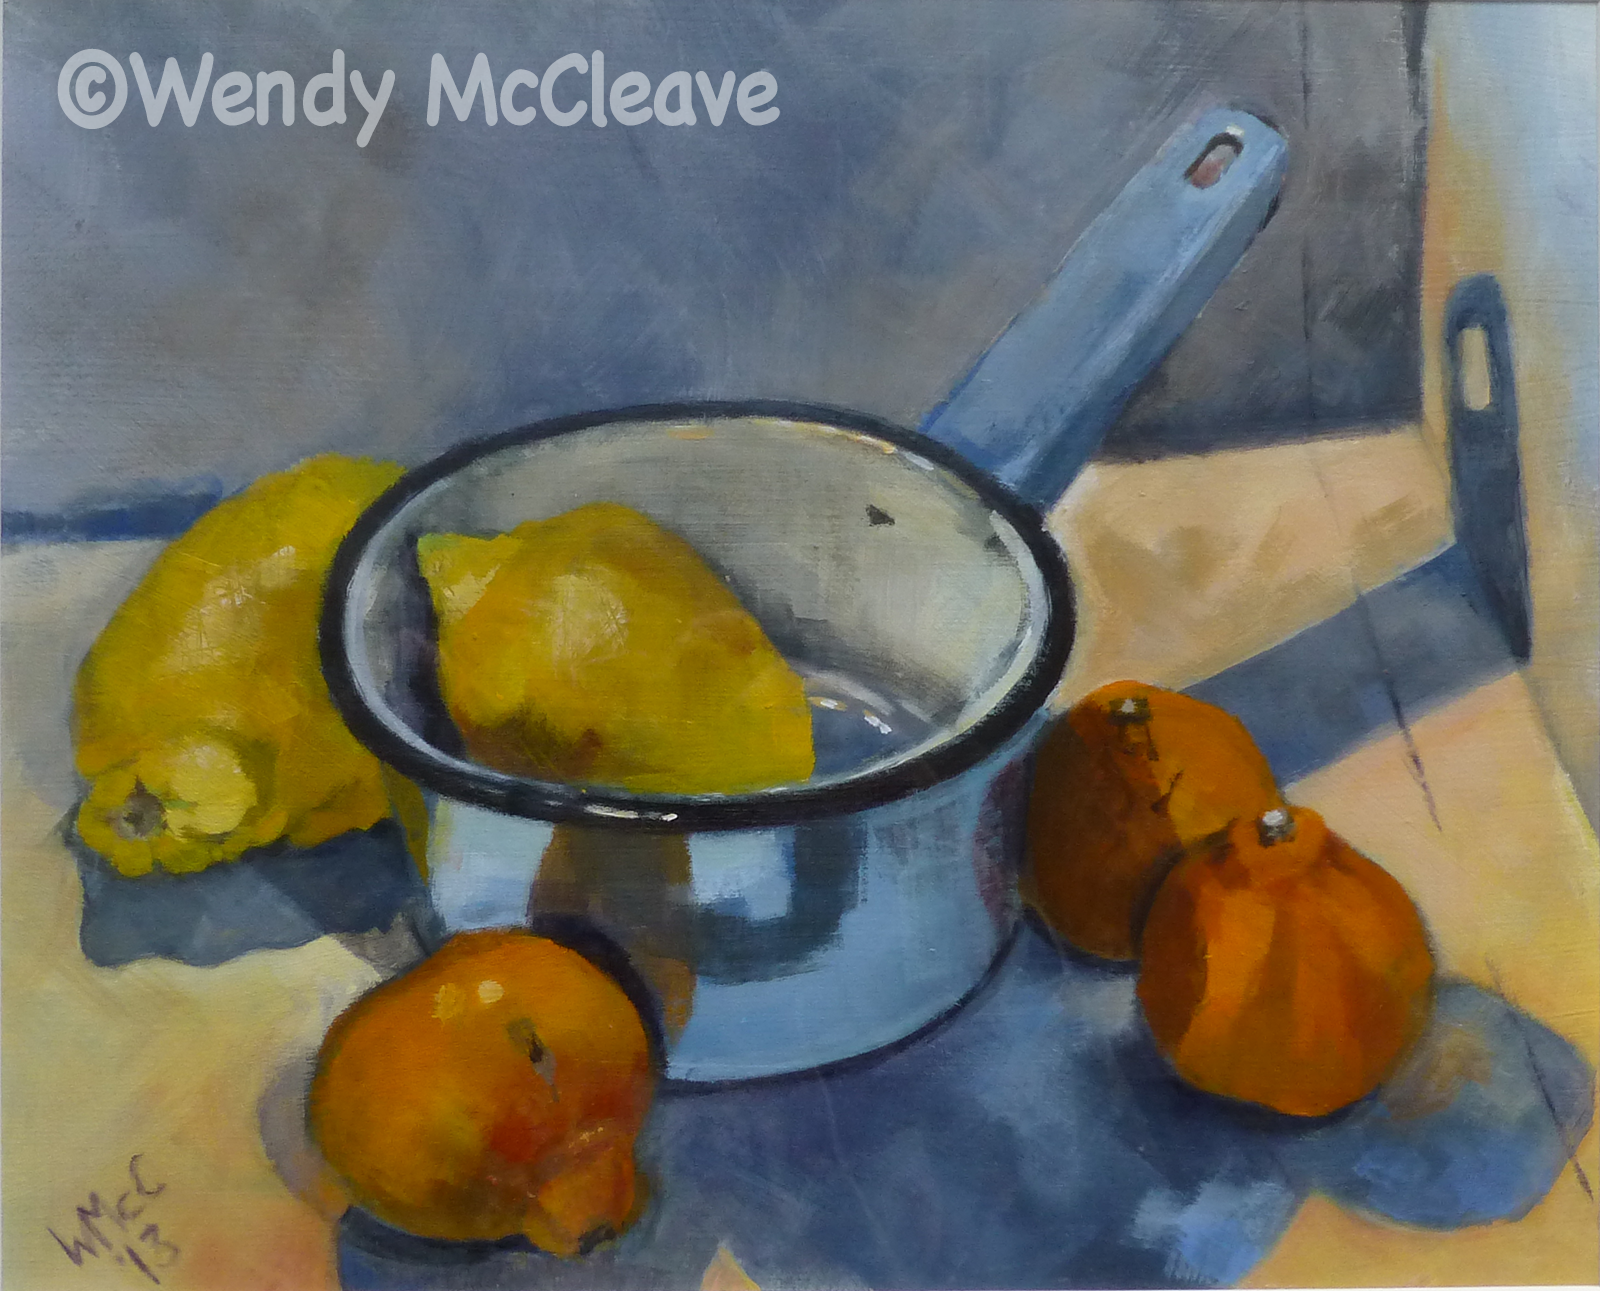 Still life acrylic painting on prepared paper of lemons, satsumas and a blue enamel saucepan in a top lit box.